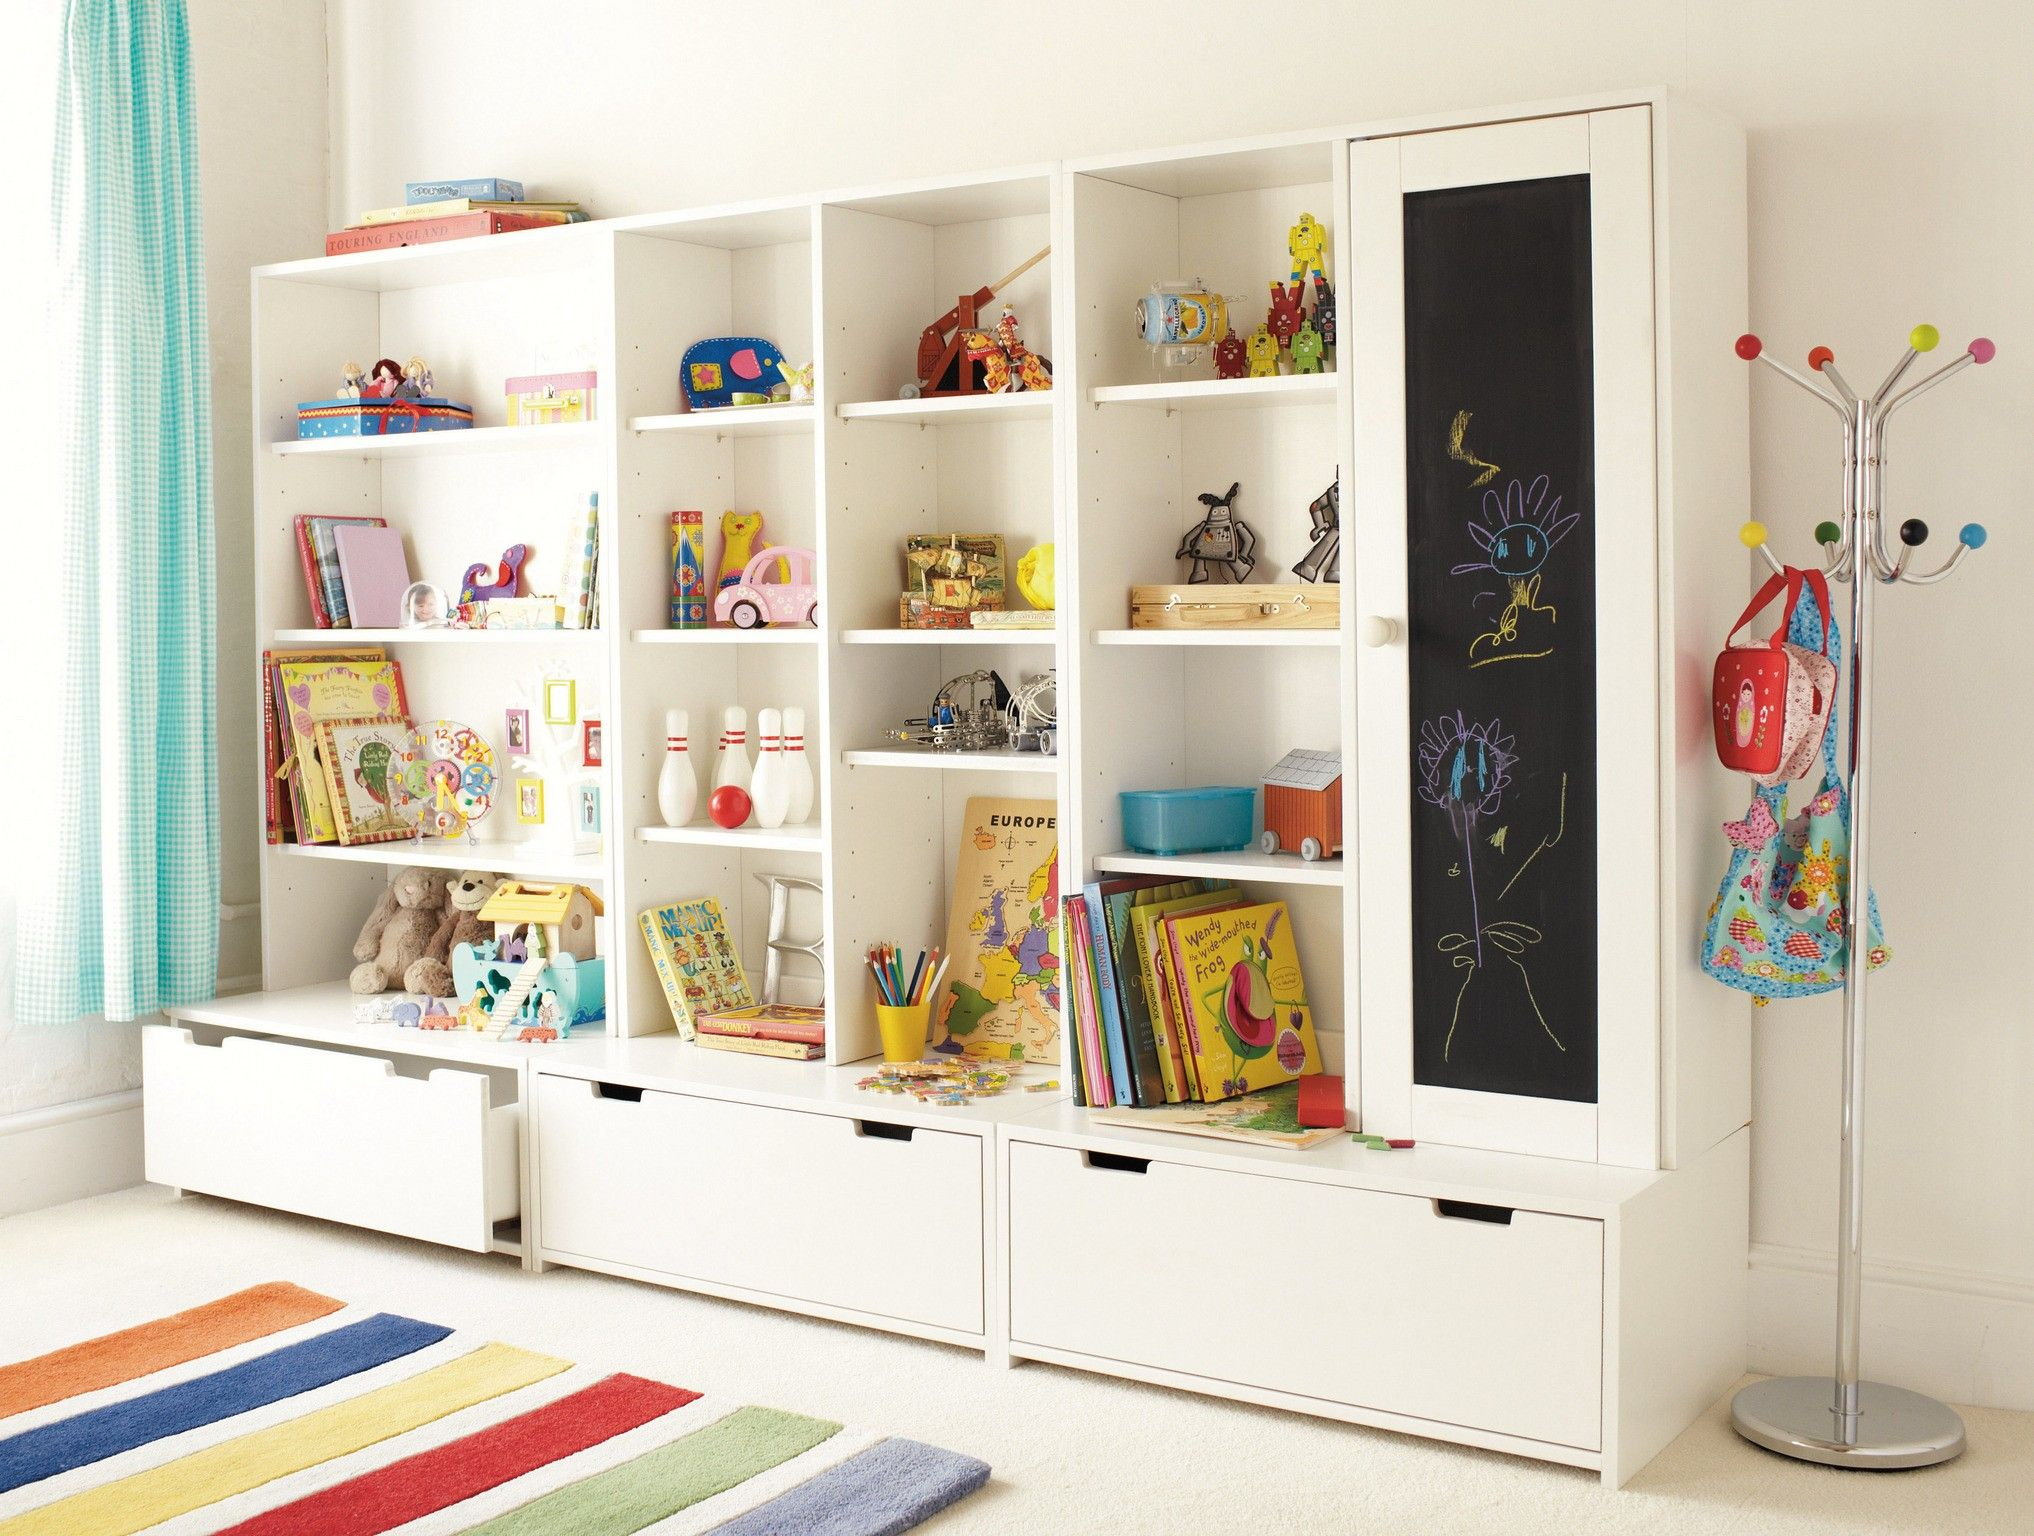 Appealing Playroom Storage Ideas Design With Large White Wall Shelf Cabinet And Drawer Also Free